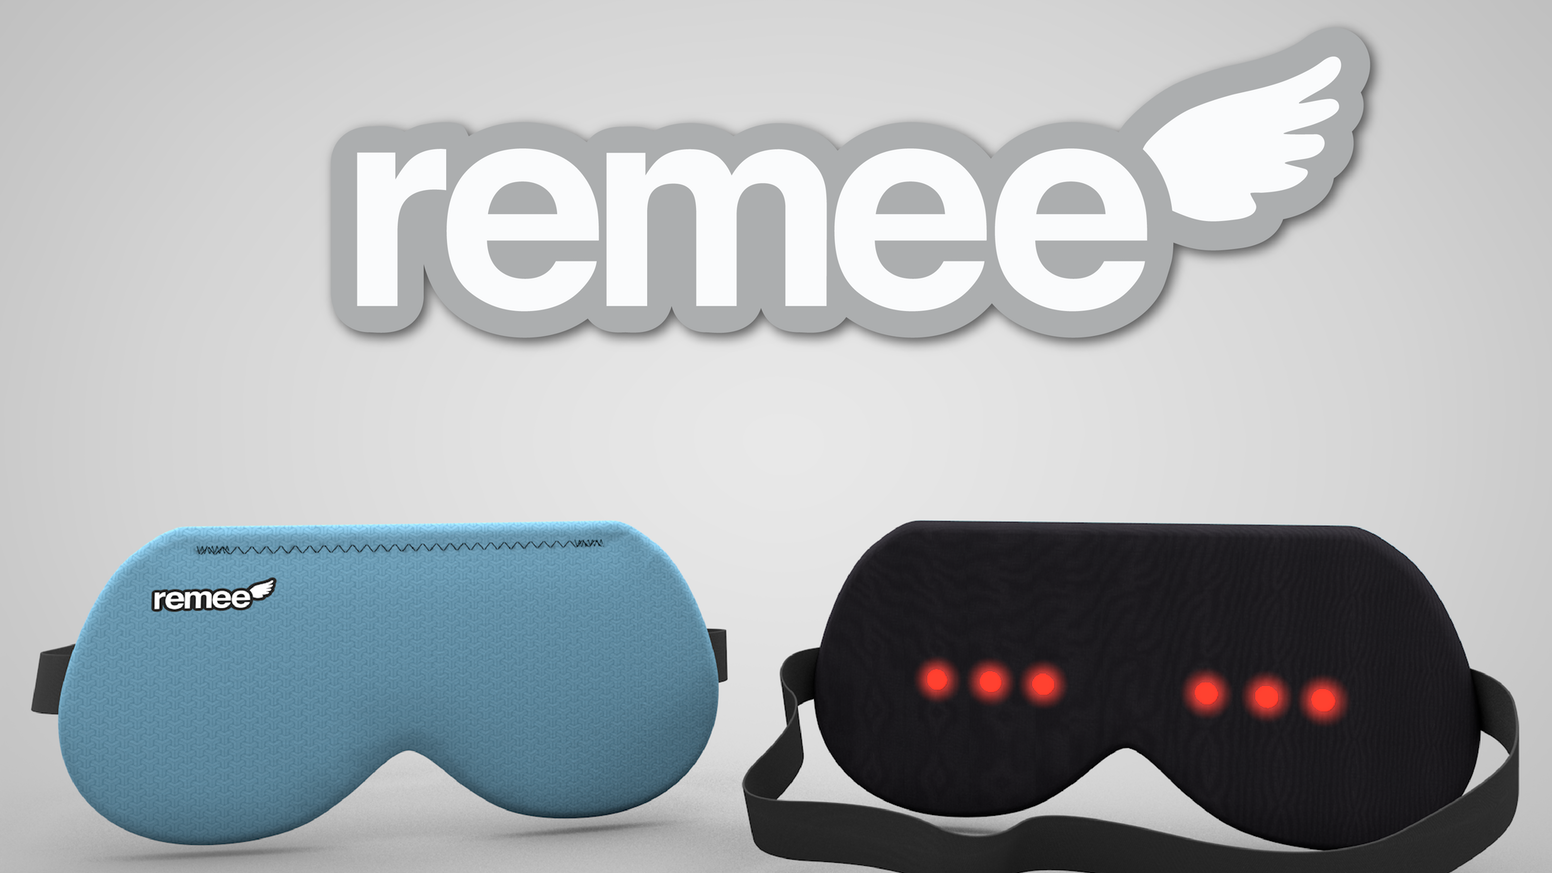 b55eed5a2f4 Remee - The REM enhancing Lucid Dreaming Mask by Bitbanger Labs ...